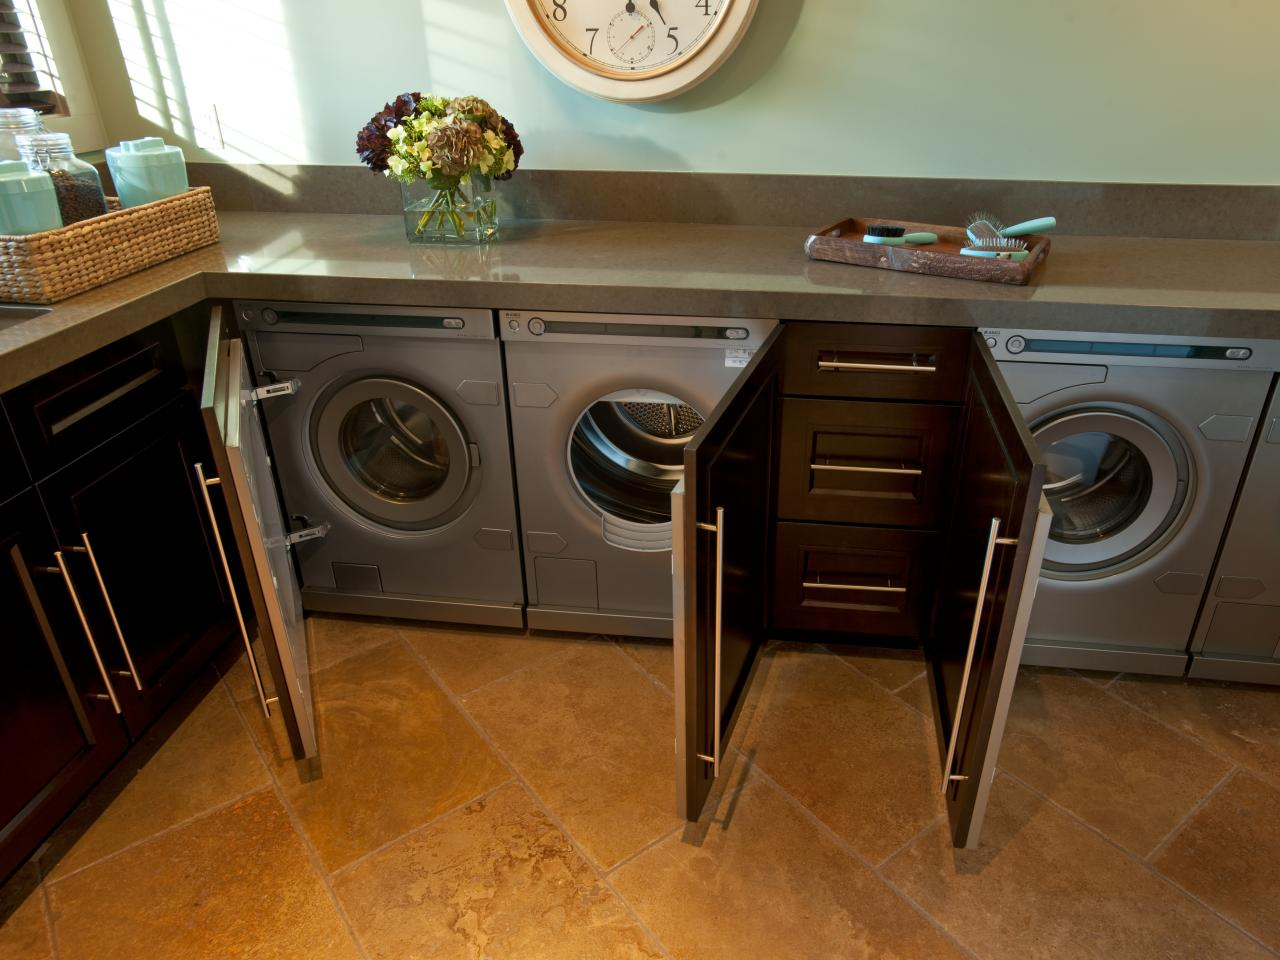 Our Favorite Laundry Rooms From Hgtv Home Giveaways Easy